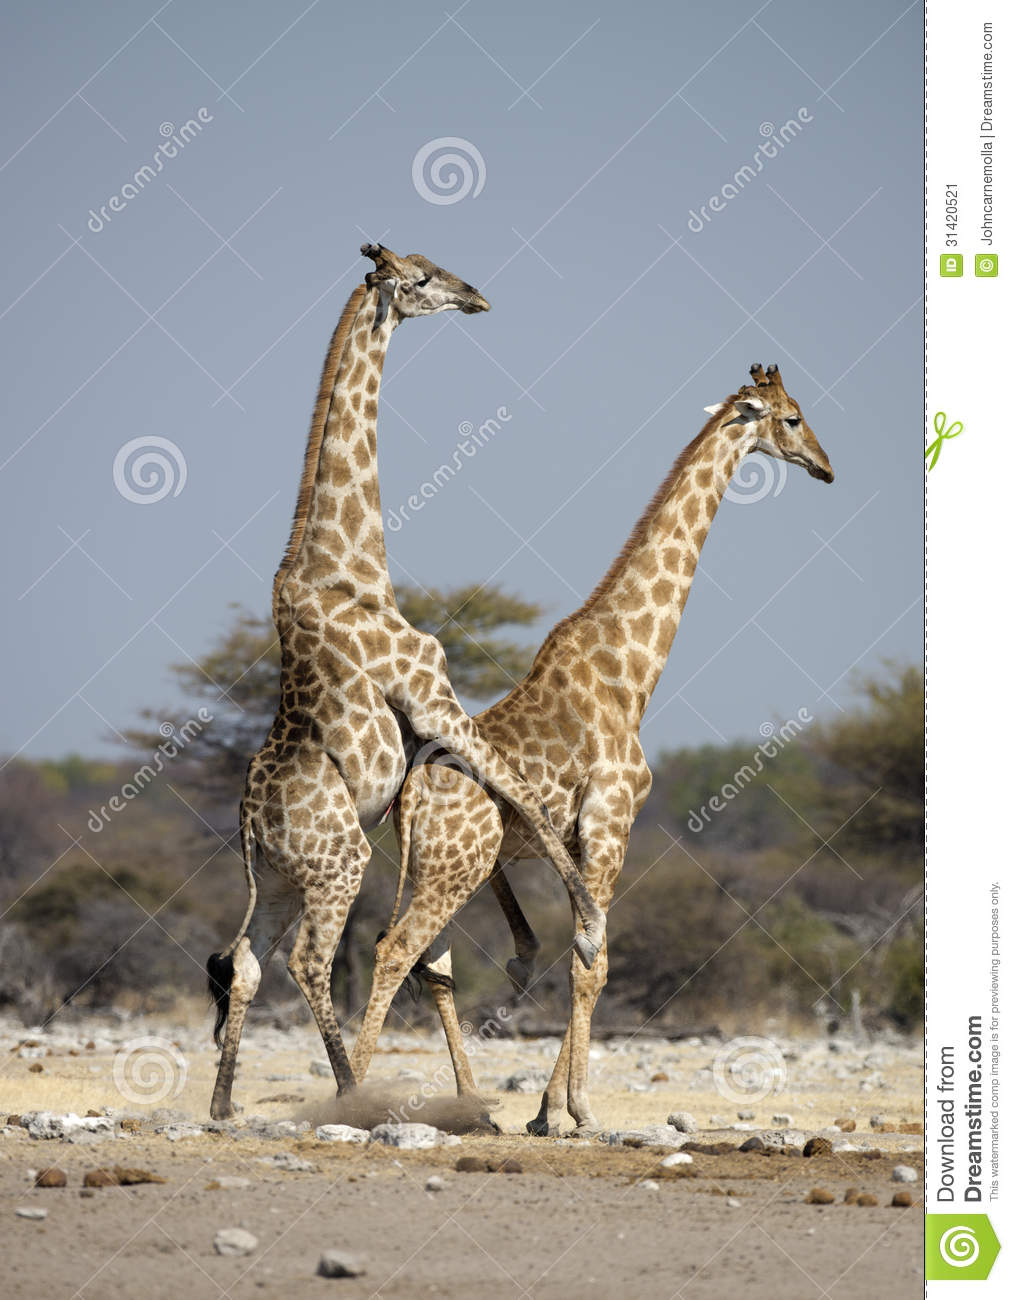 http://thumbs.dreamstime.com/z/accouplement-de-girafe-31420521.jpg